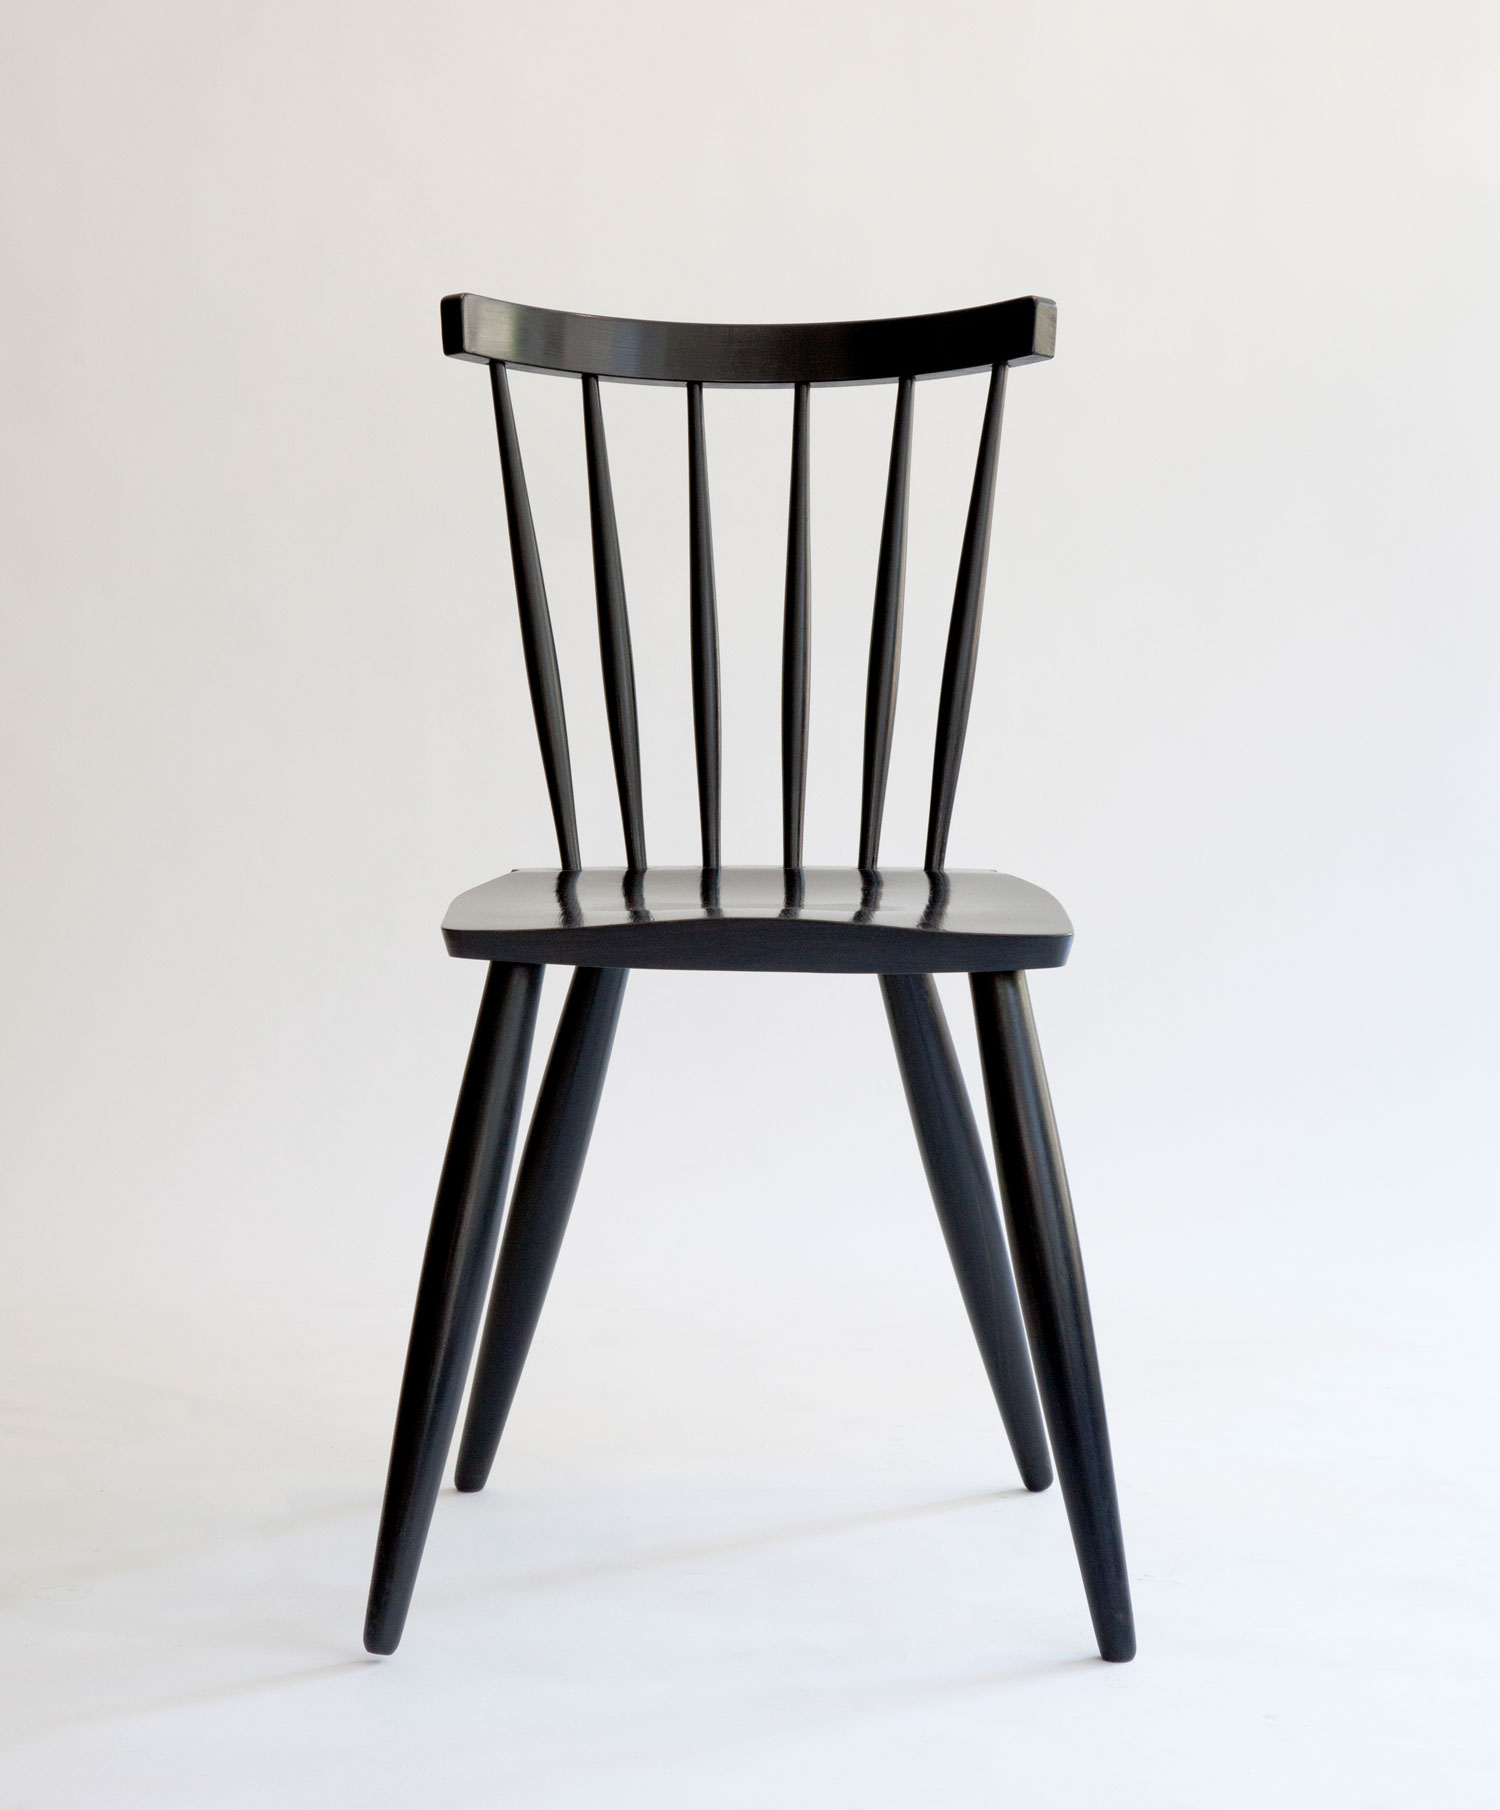 metal-and-wood-seating-chair-maine-windsor-2.jpg